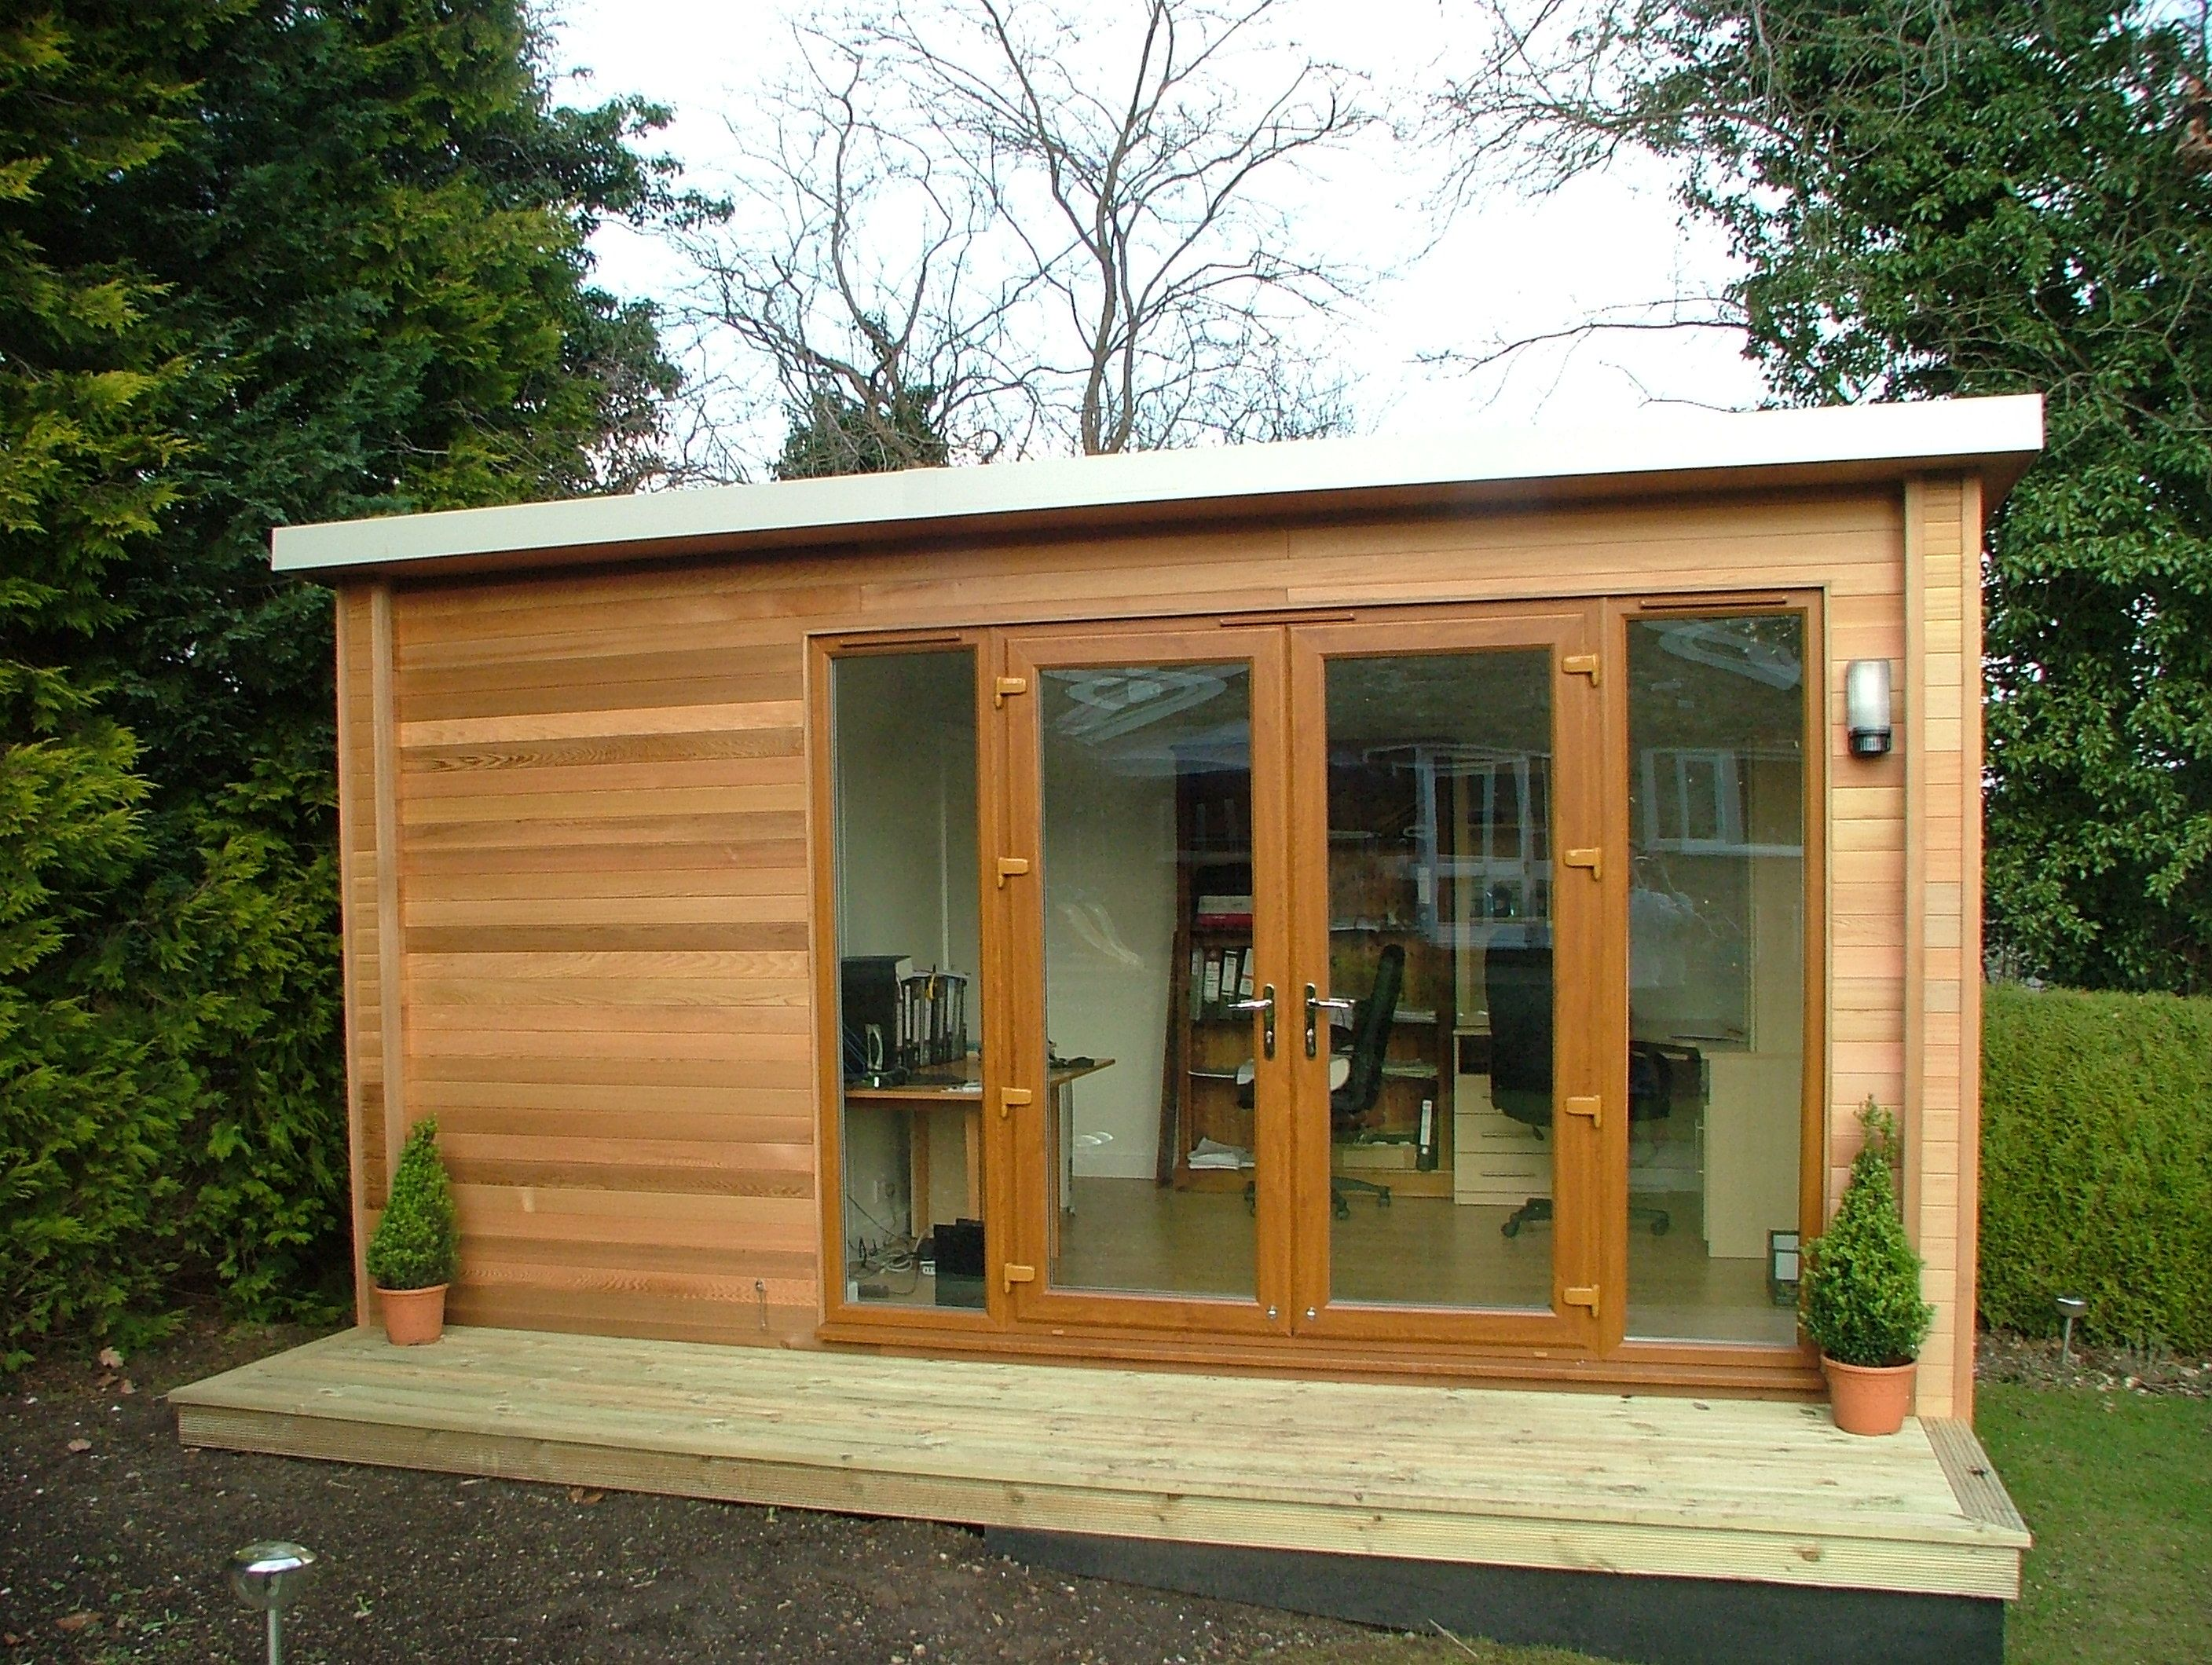 Home garden office with a flat roof and upvc french doors for Garden office ideas uk